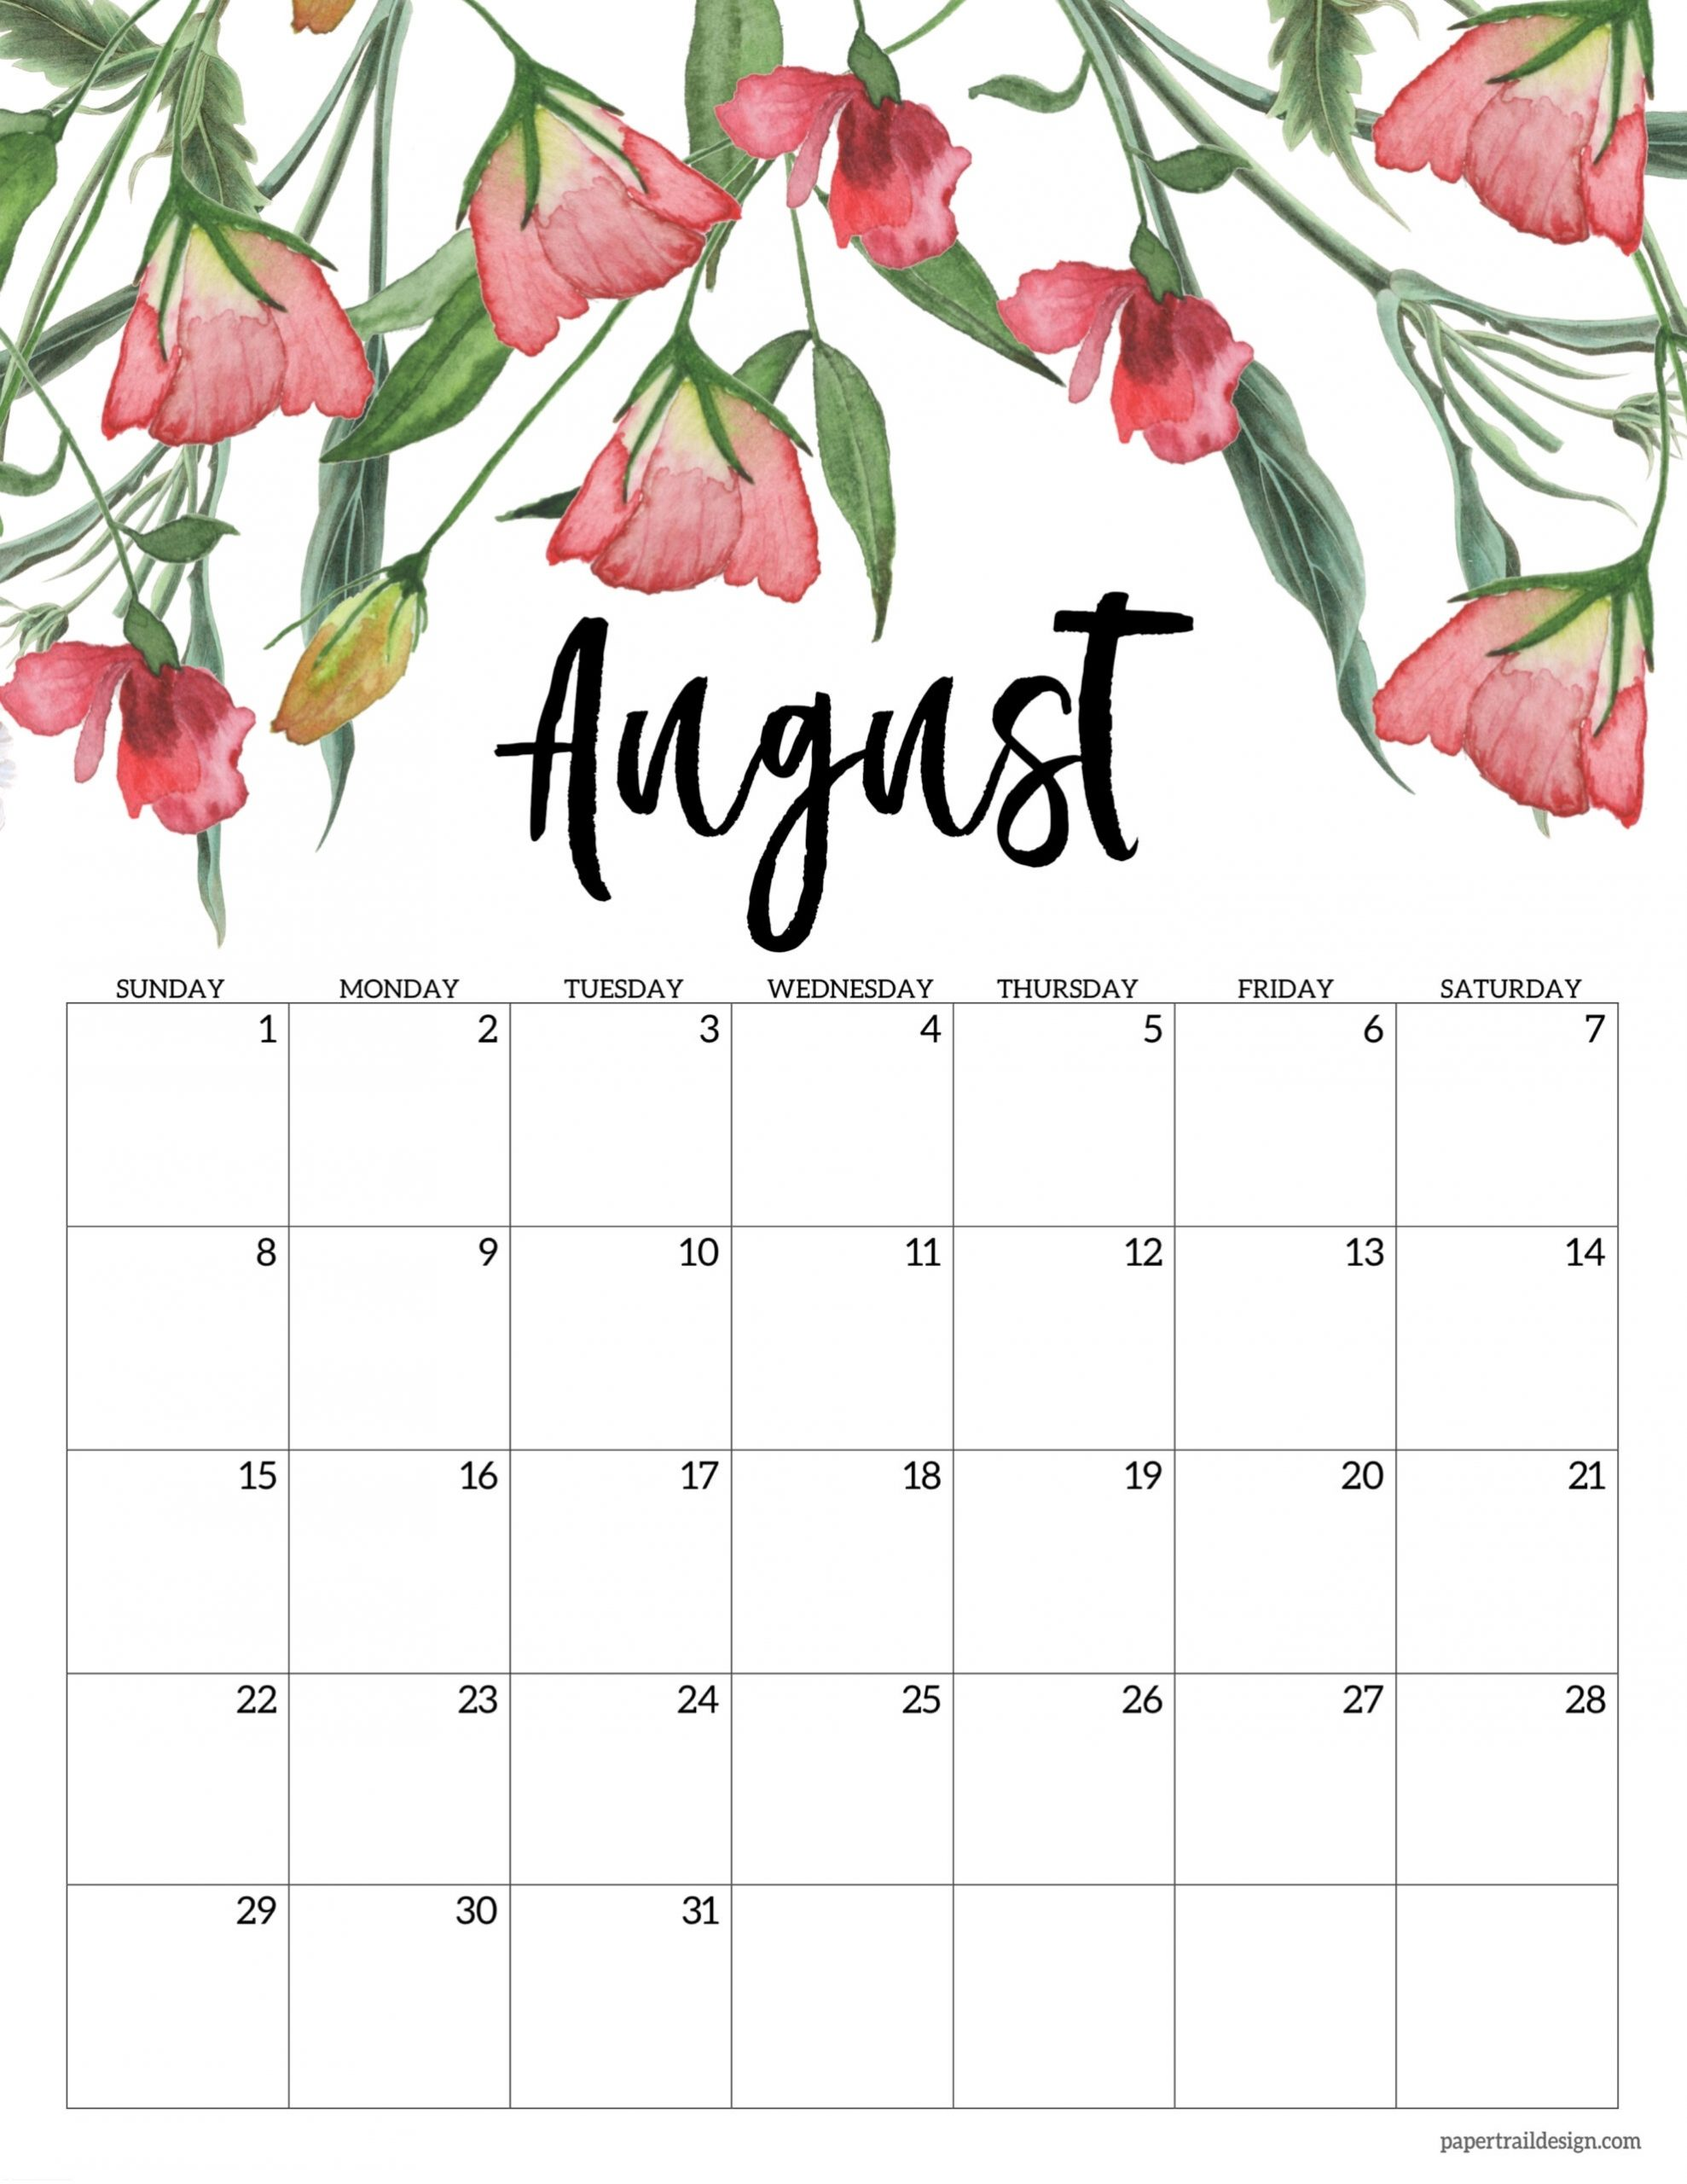 Catch Pink August Calendar 2021 Printable